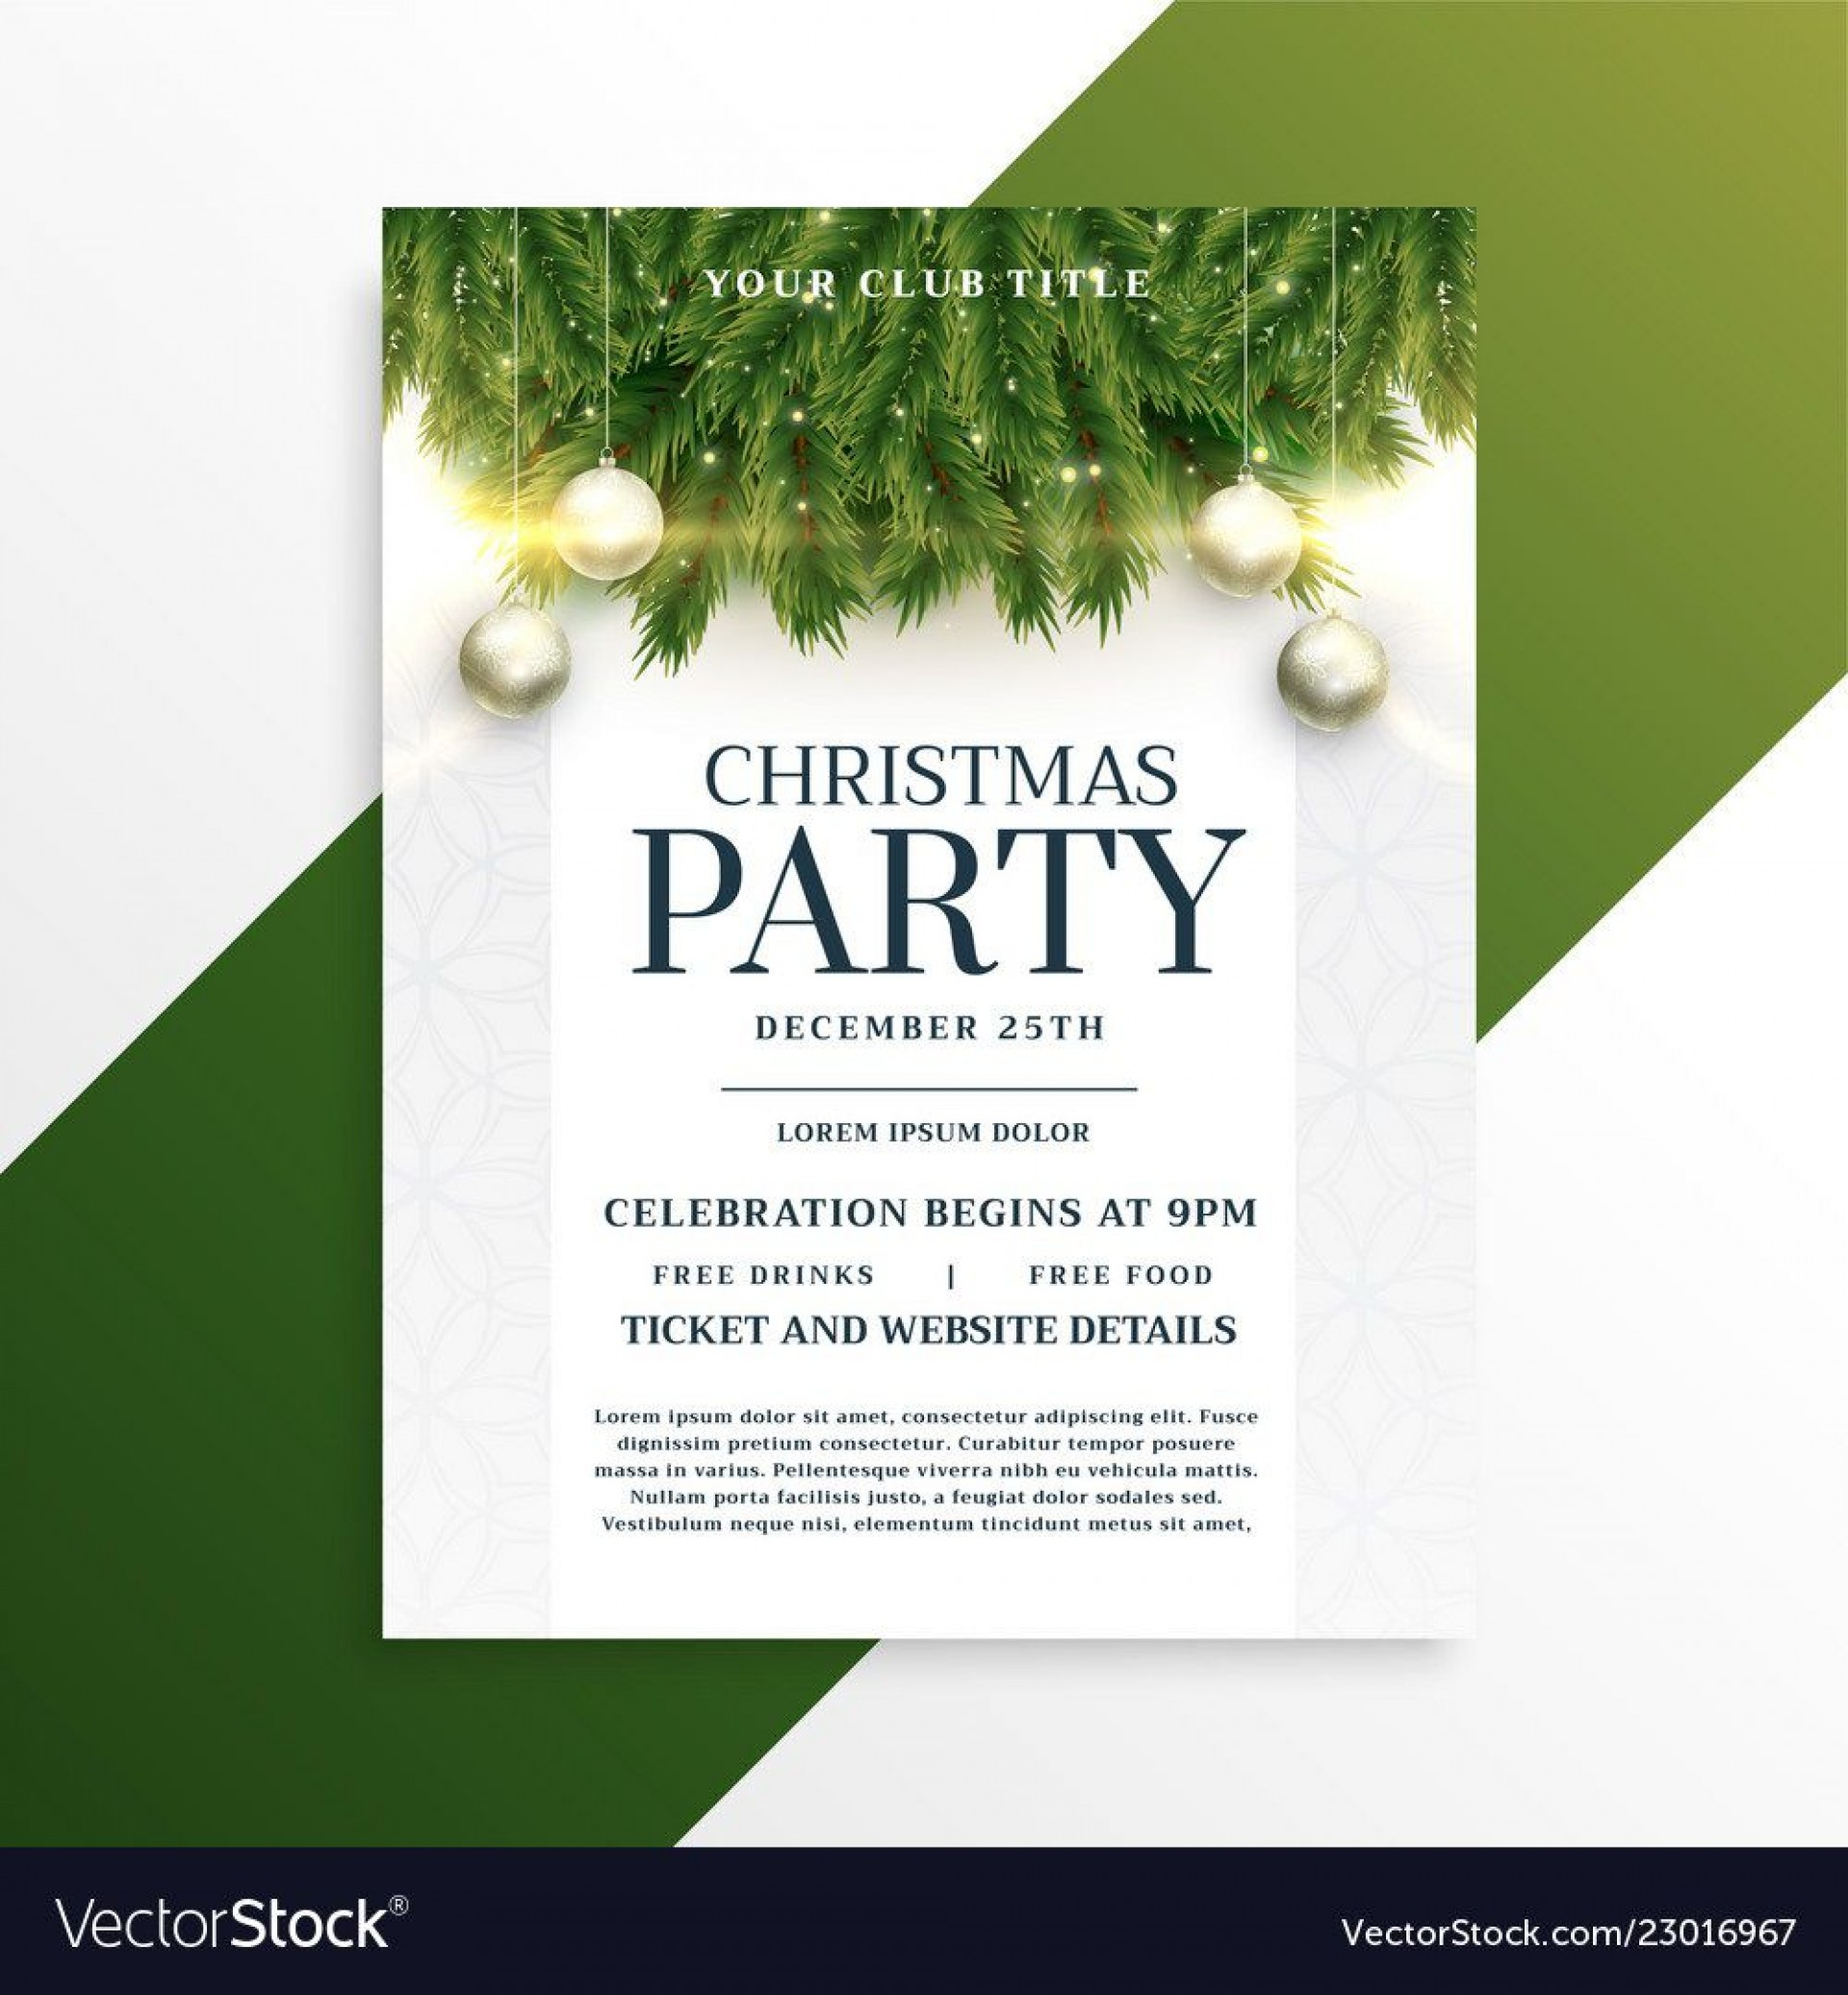 001 Stirring Holiday Party Flyer Template Free High Resolution  Office1920